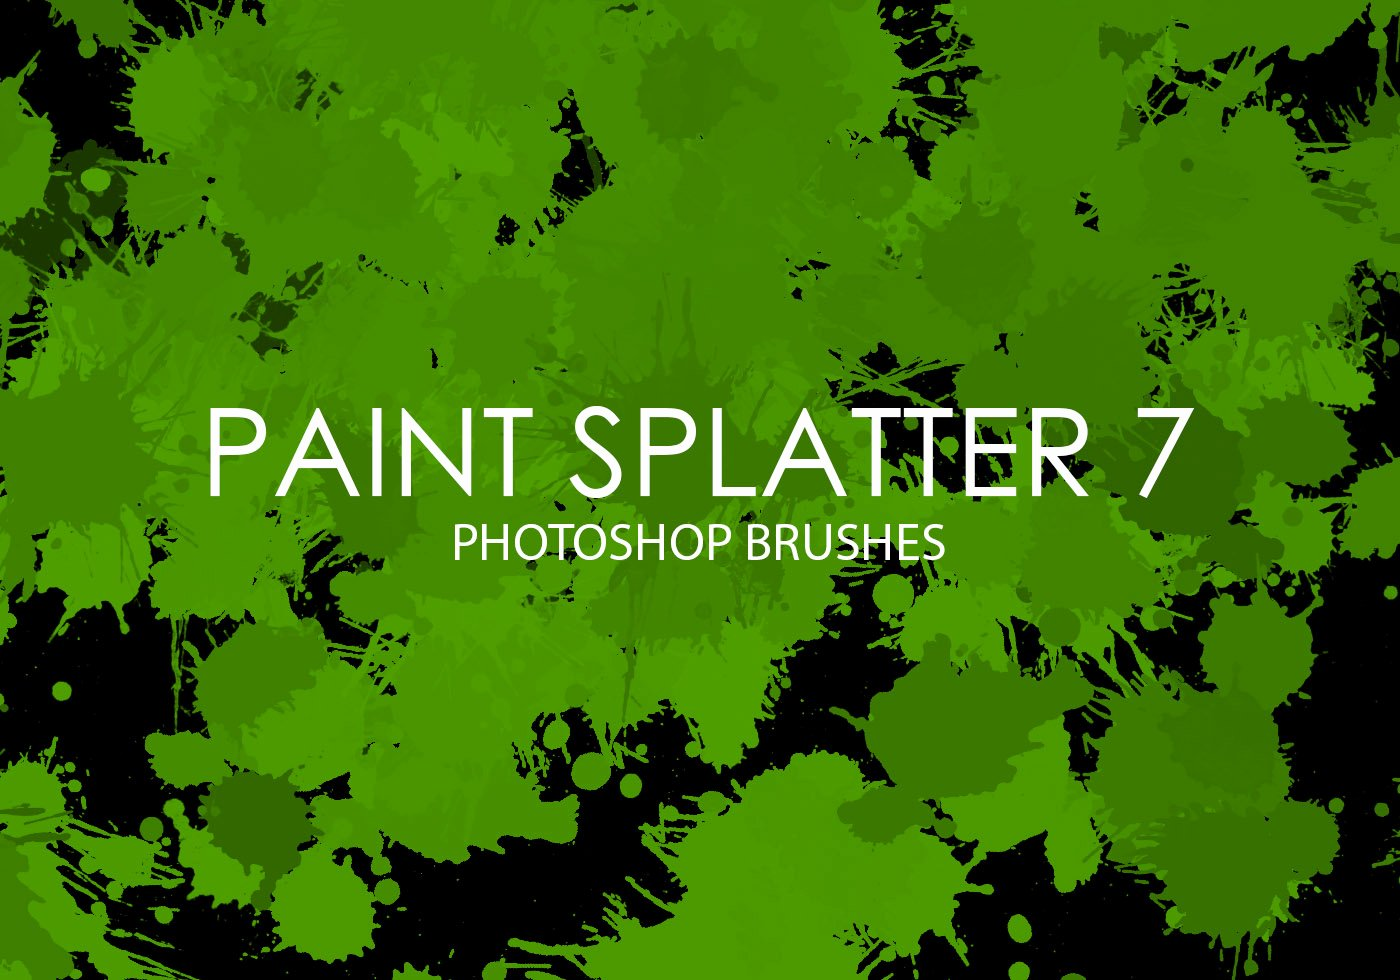 Paint Splatter Brush Photoshop Elegant Free Paint Splatter Shop Brushes 7 Free Shop